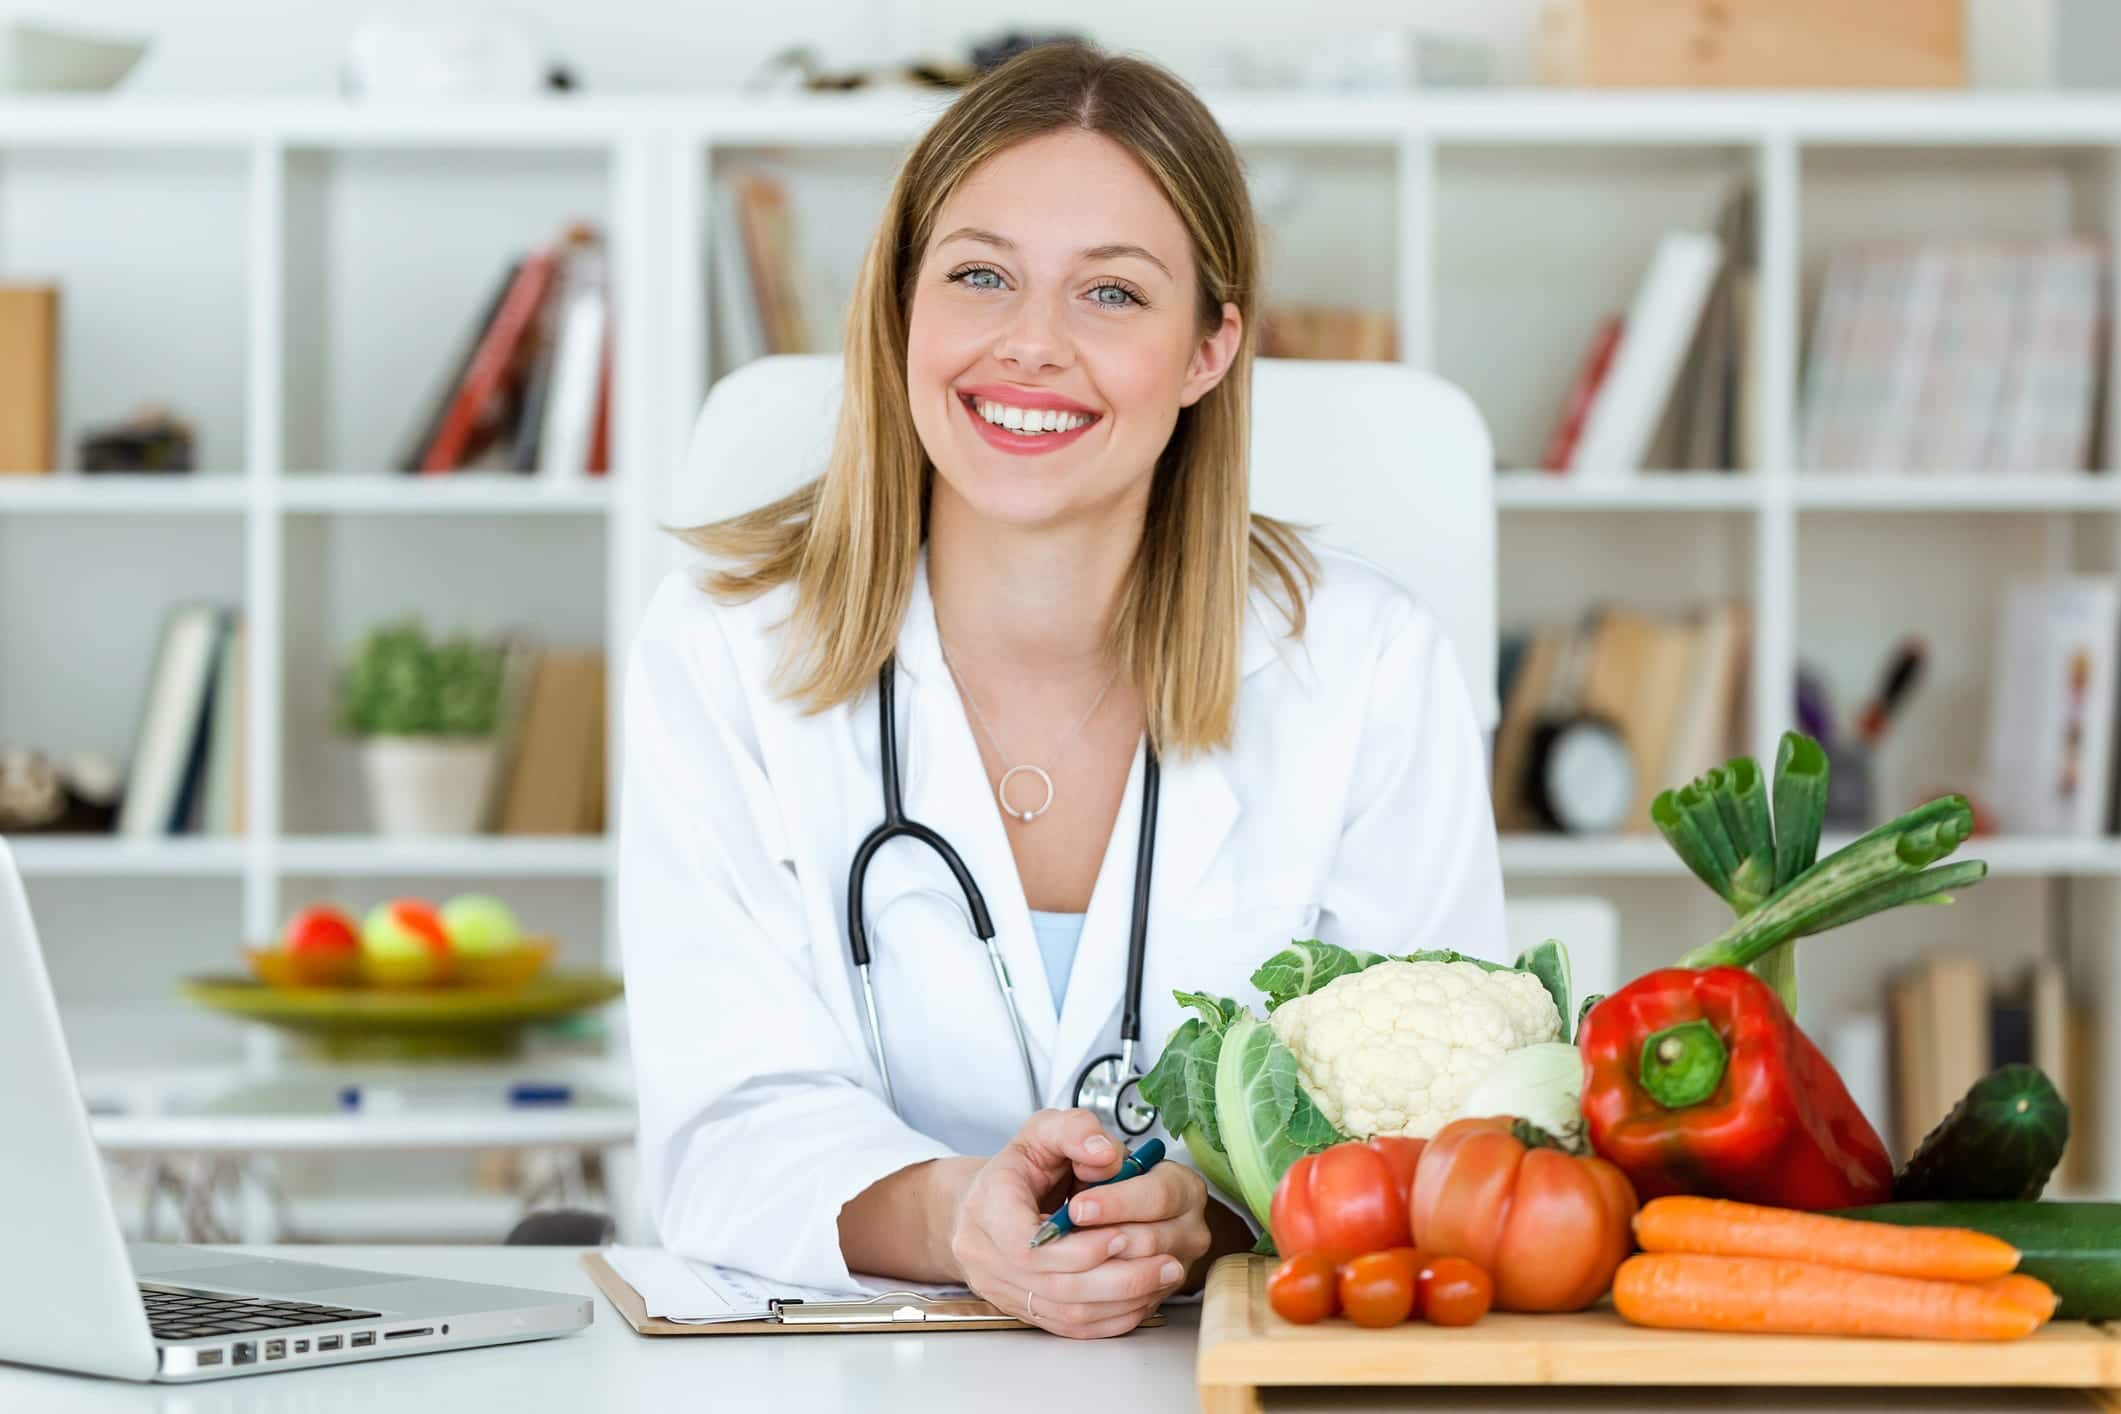 Nutrition professional at her desk with vegetables